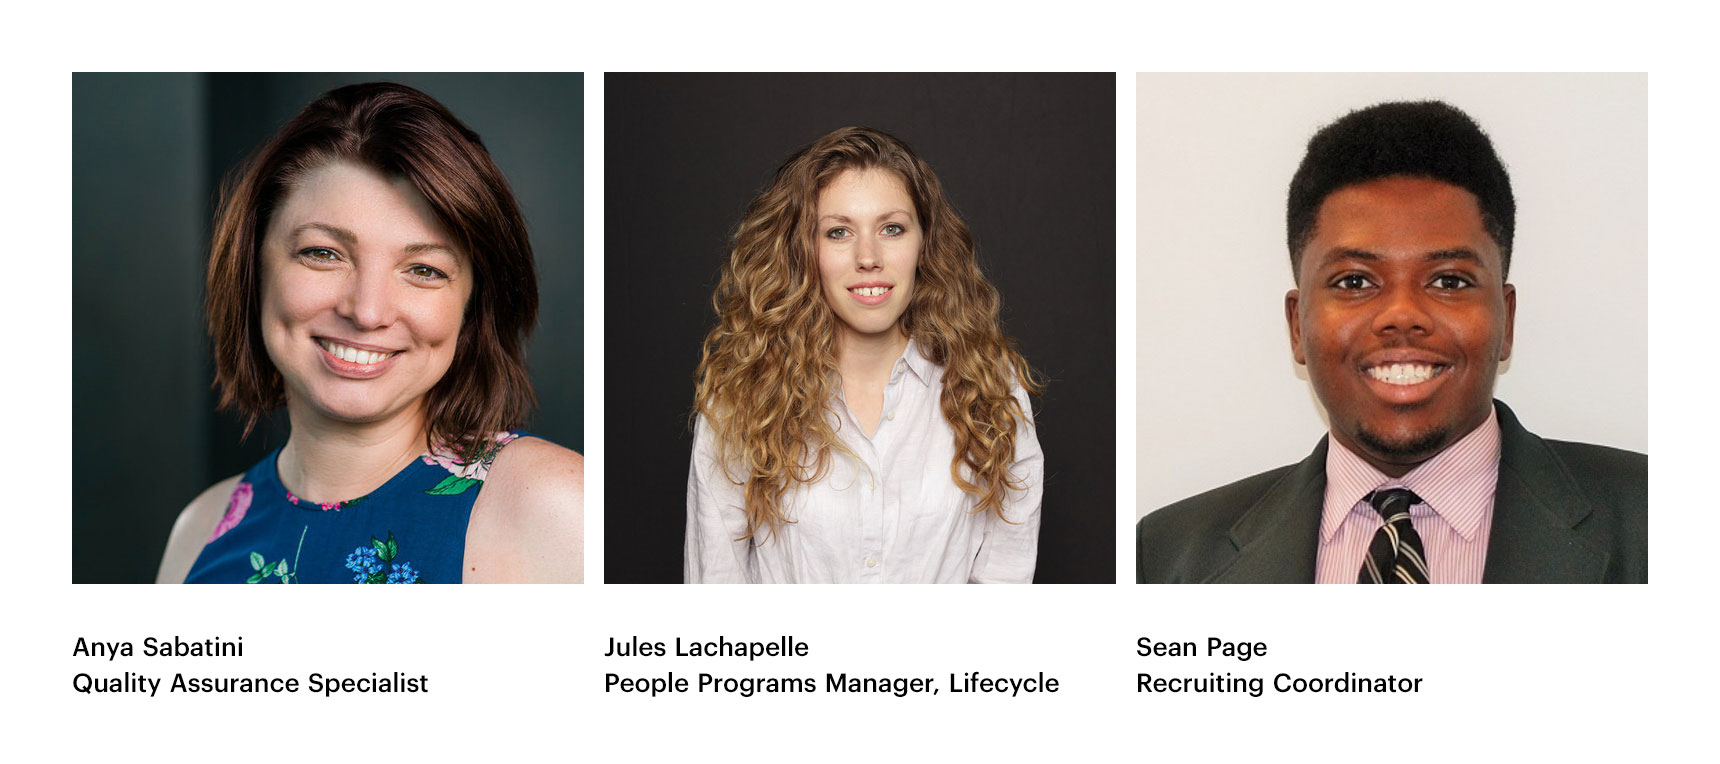 Anya Sabatini, Quality Assurance Specialist - Jules Lachapelle, People Programs Manager - Sean Page, Recruiting coordinator